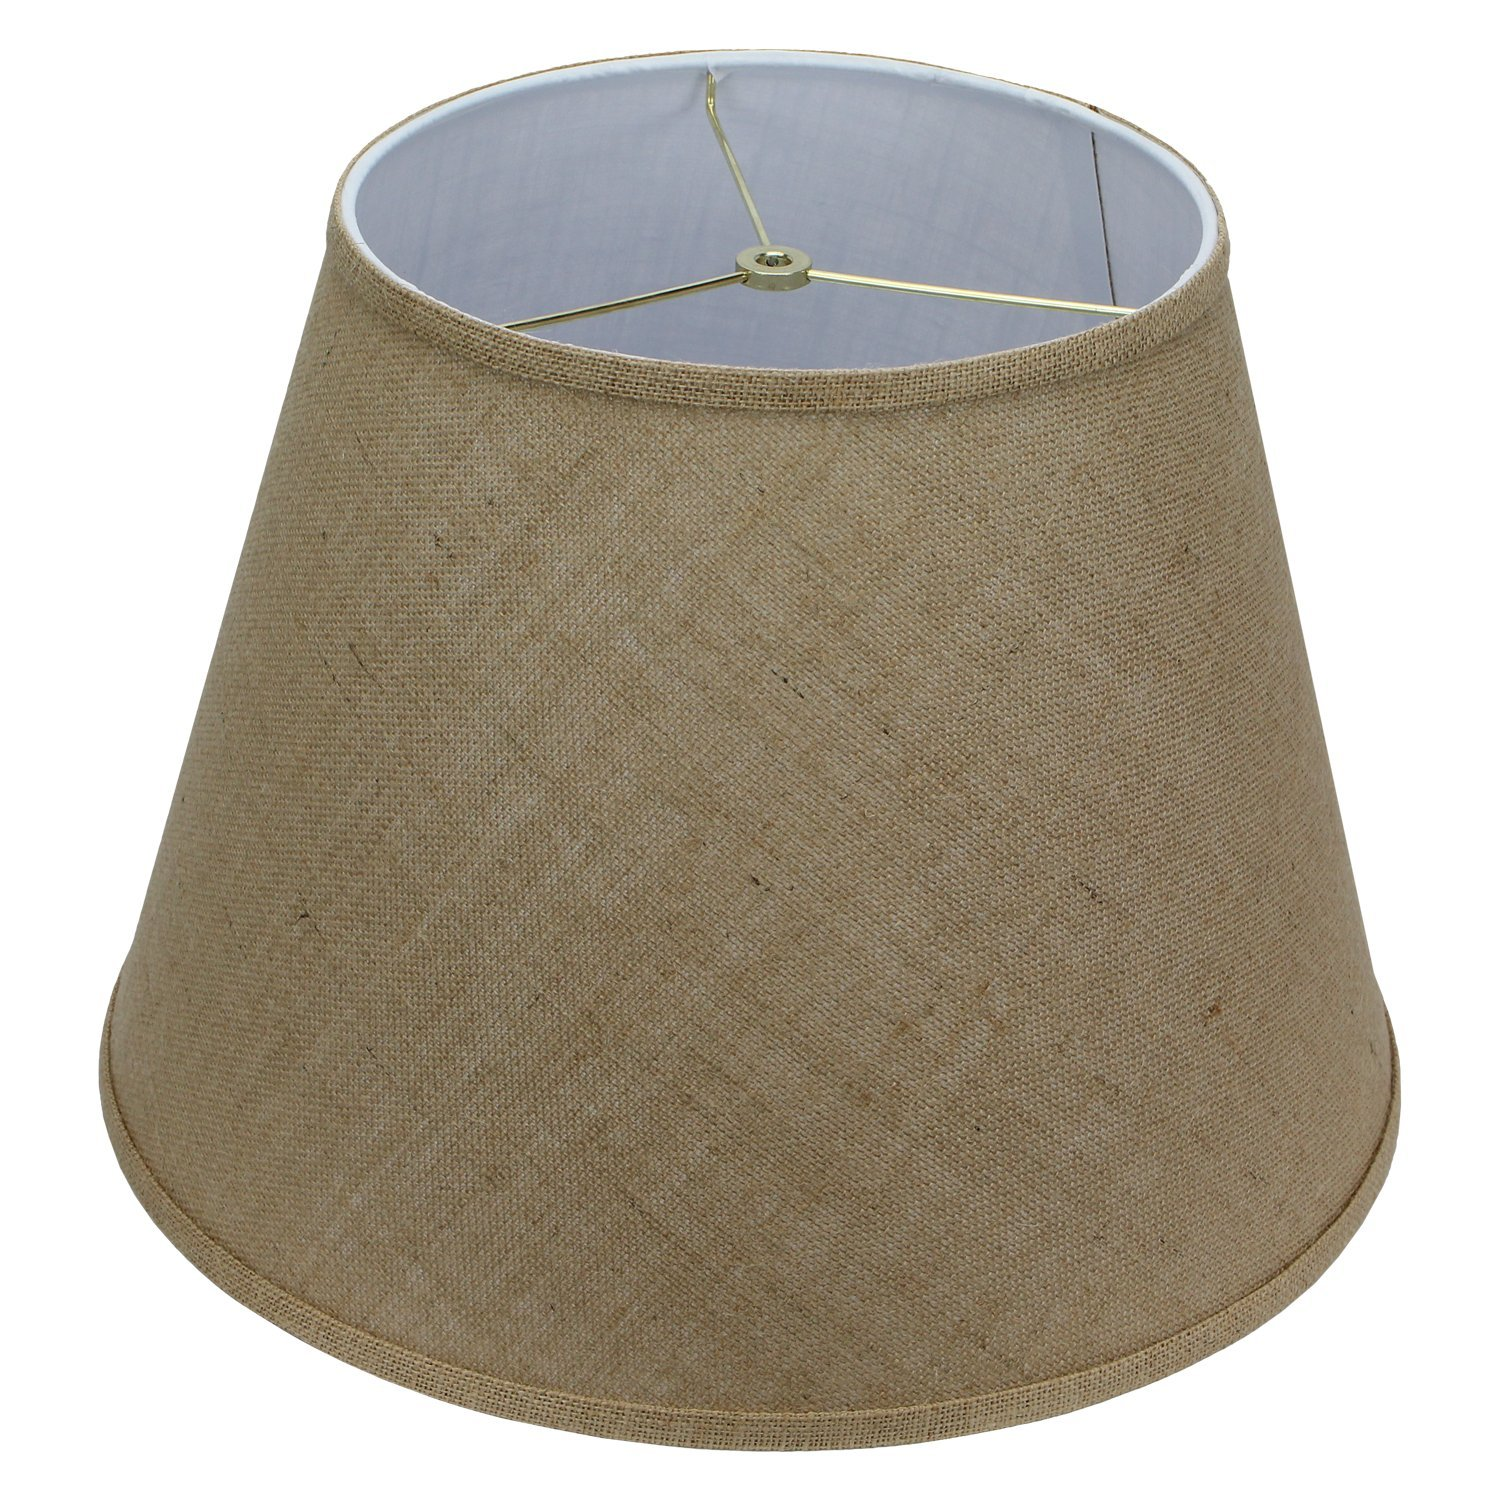 FenchelShades.com Lampshade 11'' Top Diameter x 18'' Bottom Diameter x 13'' Slant Height with Washer (Spider) Attachment. For Use on Lamps with Harps (Burlap)